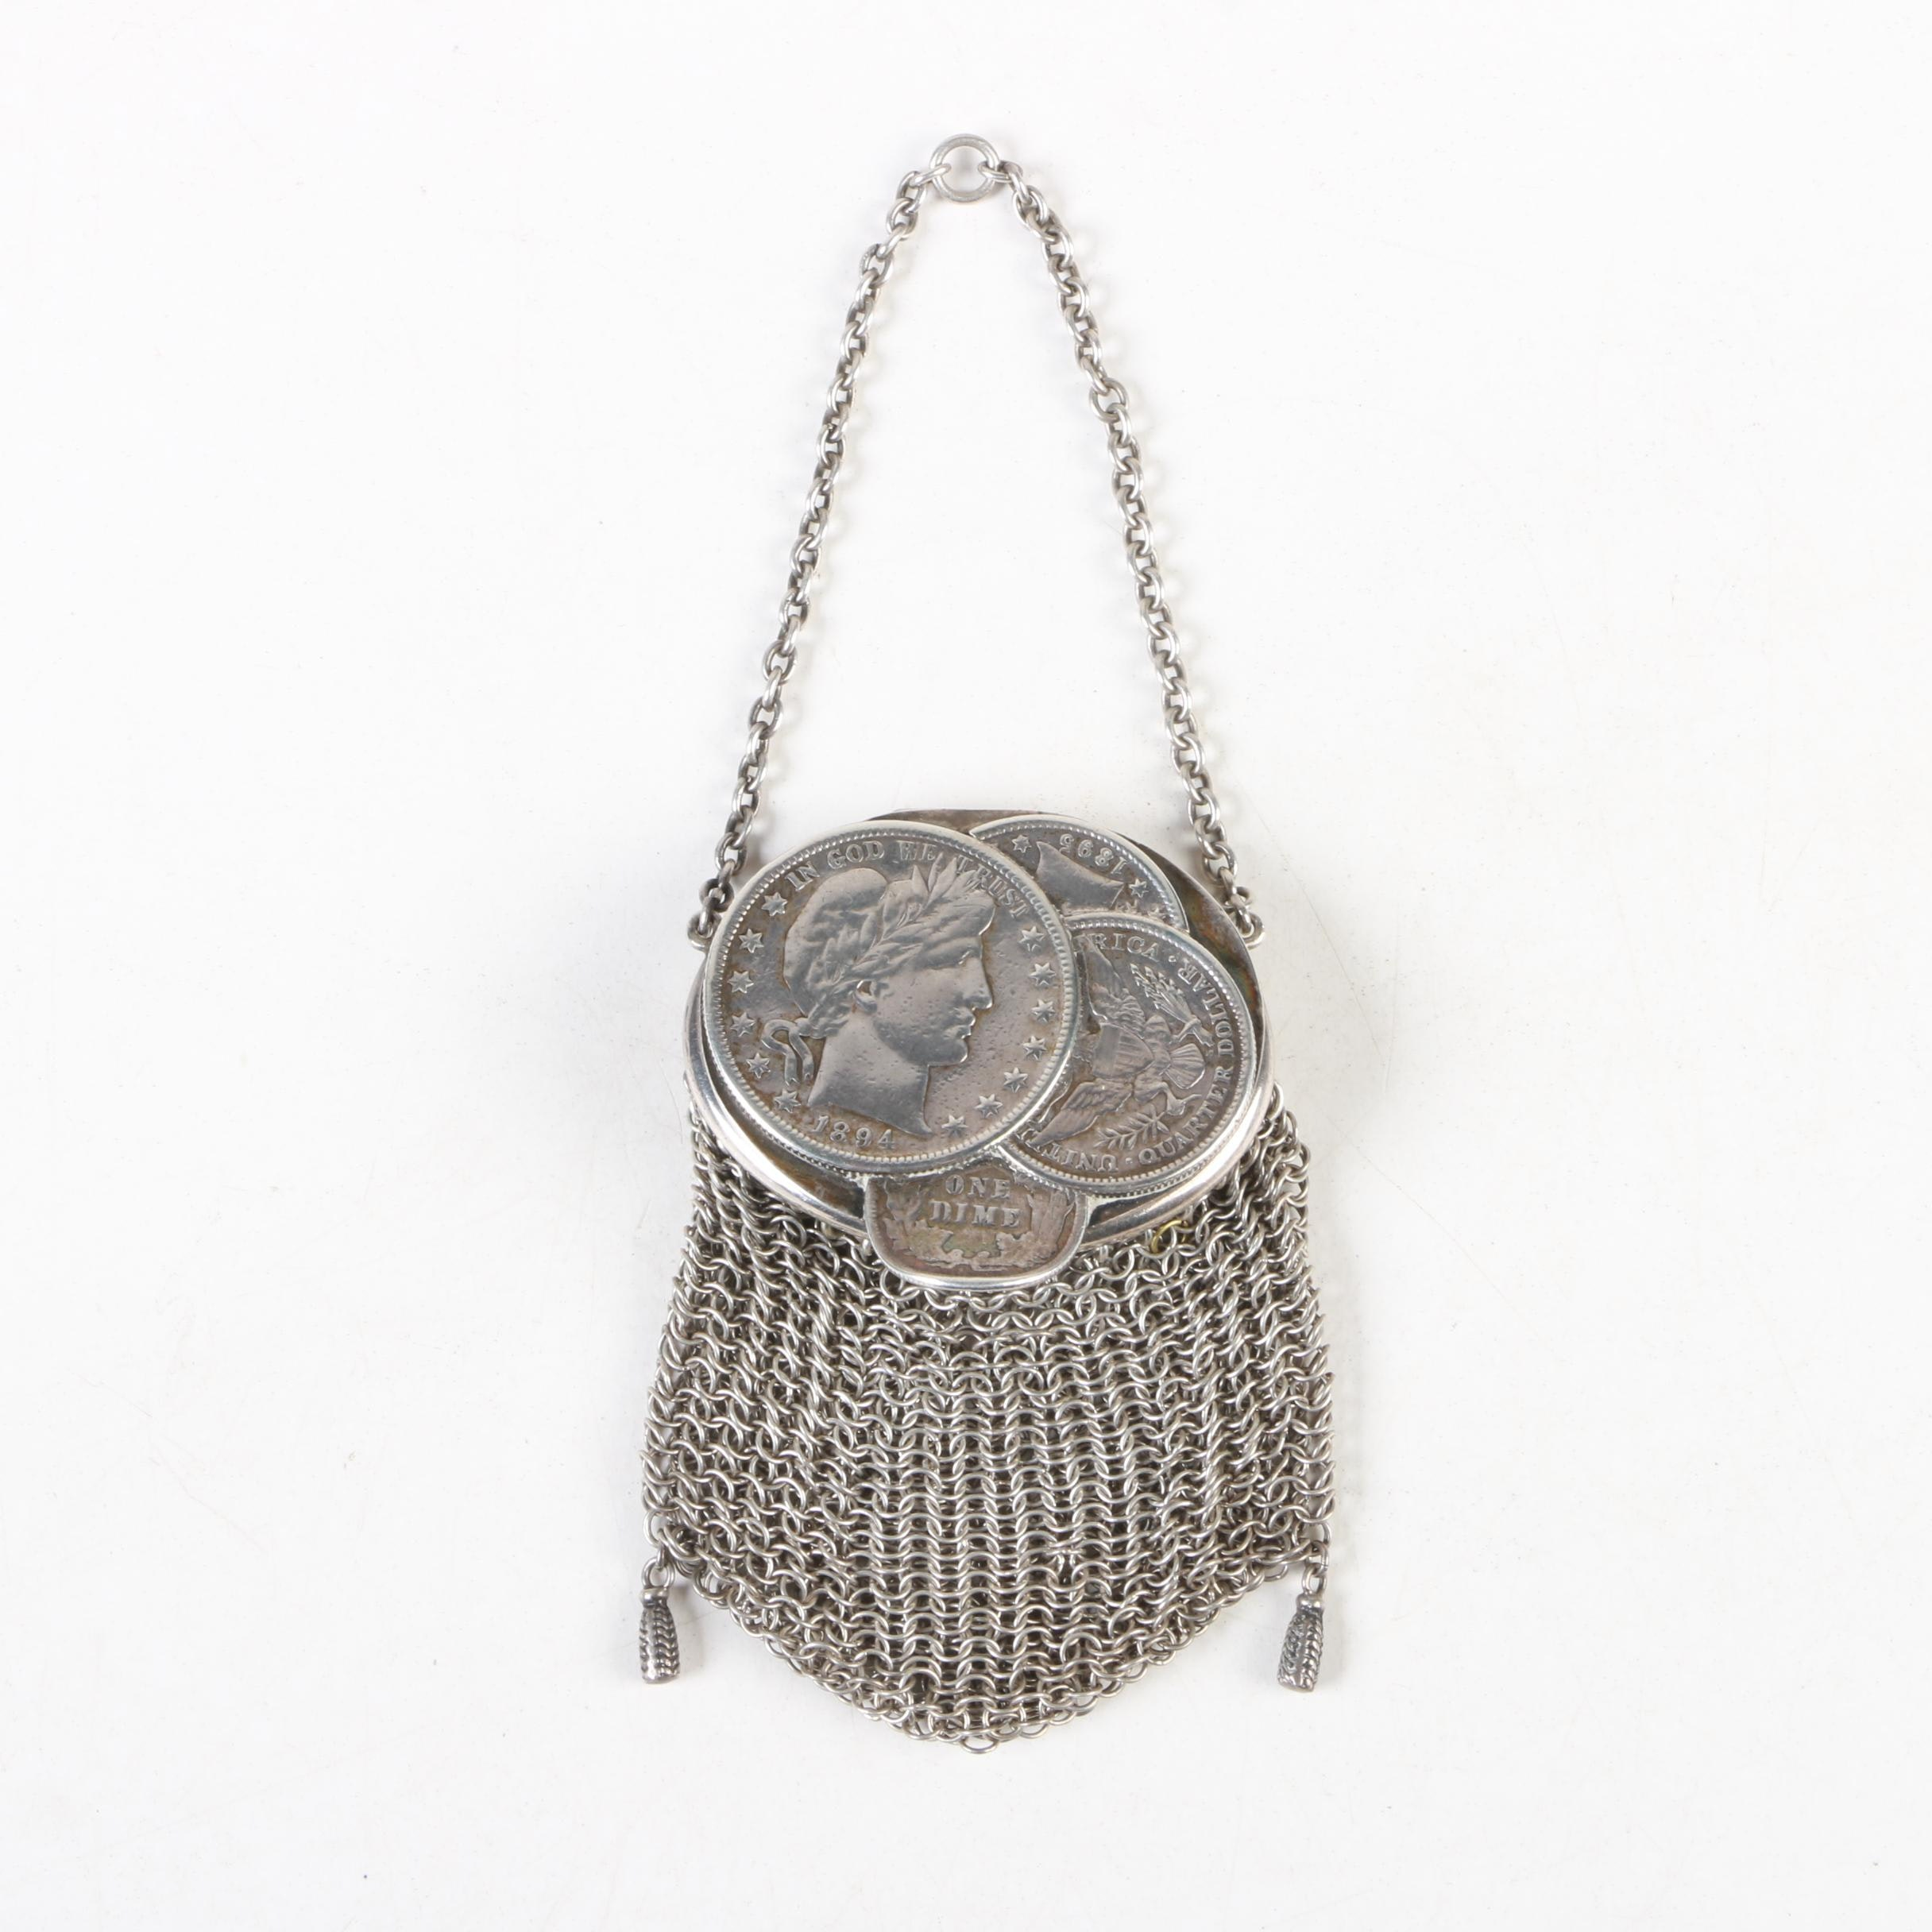 Victorian Sterling and 900 Silver Chatelaine Mesh Coin Purse, Late 19th Century